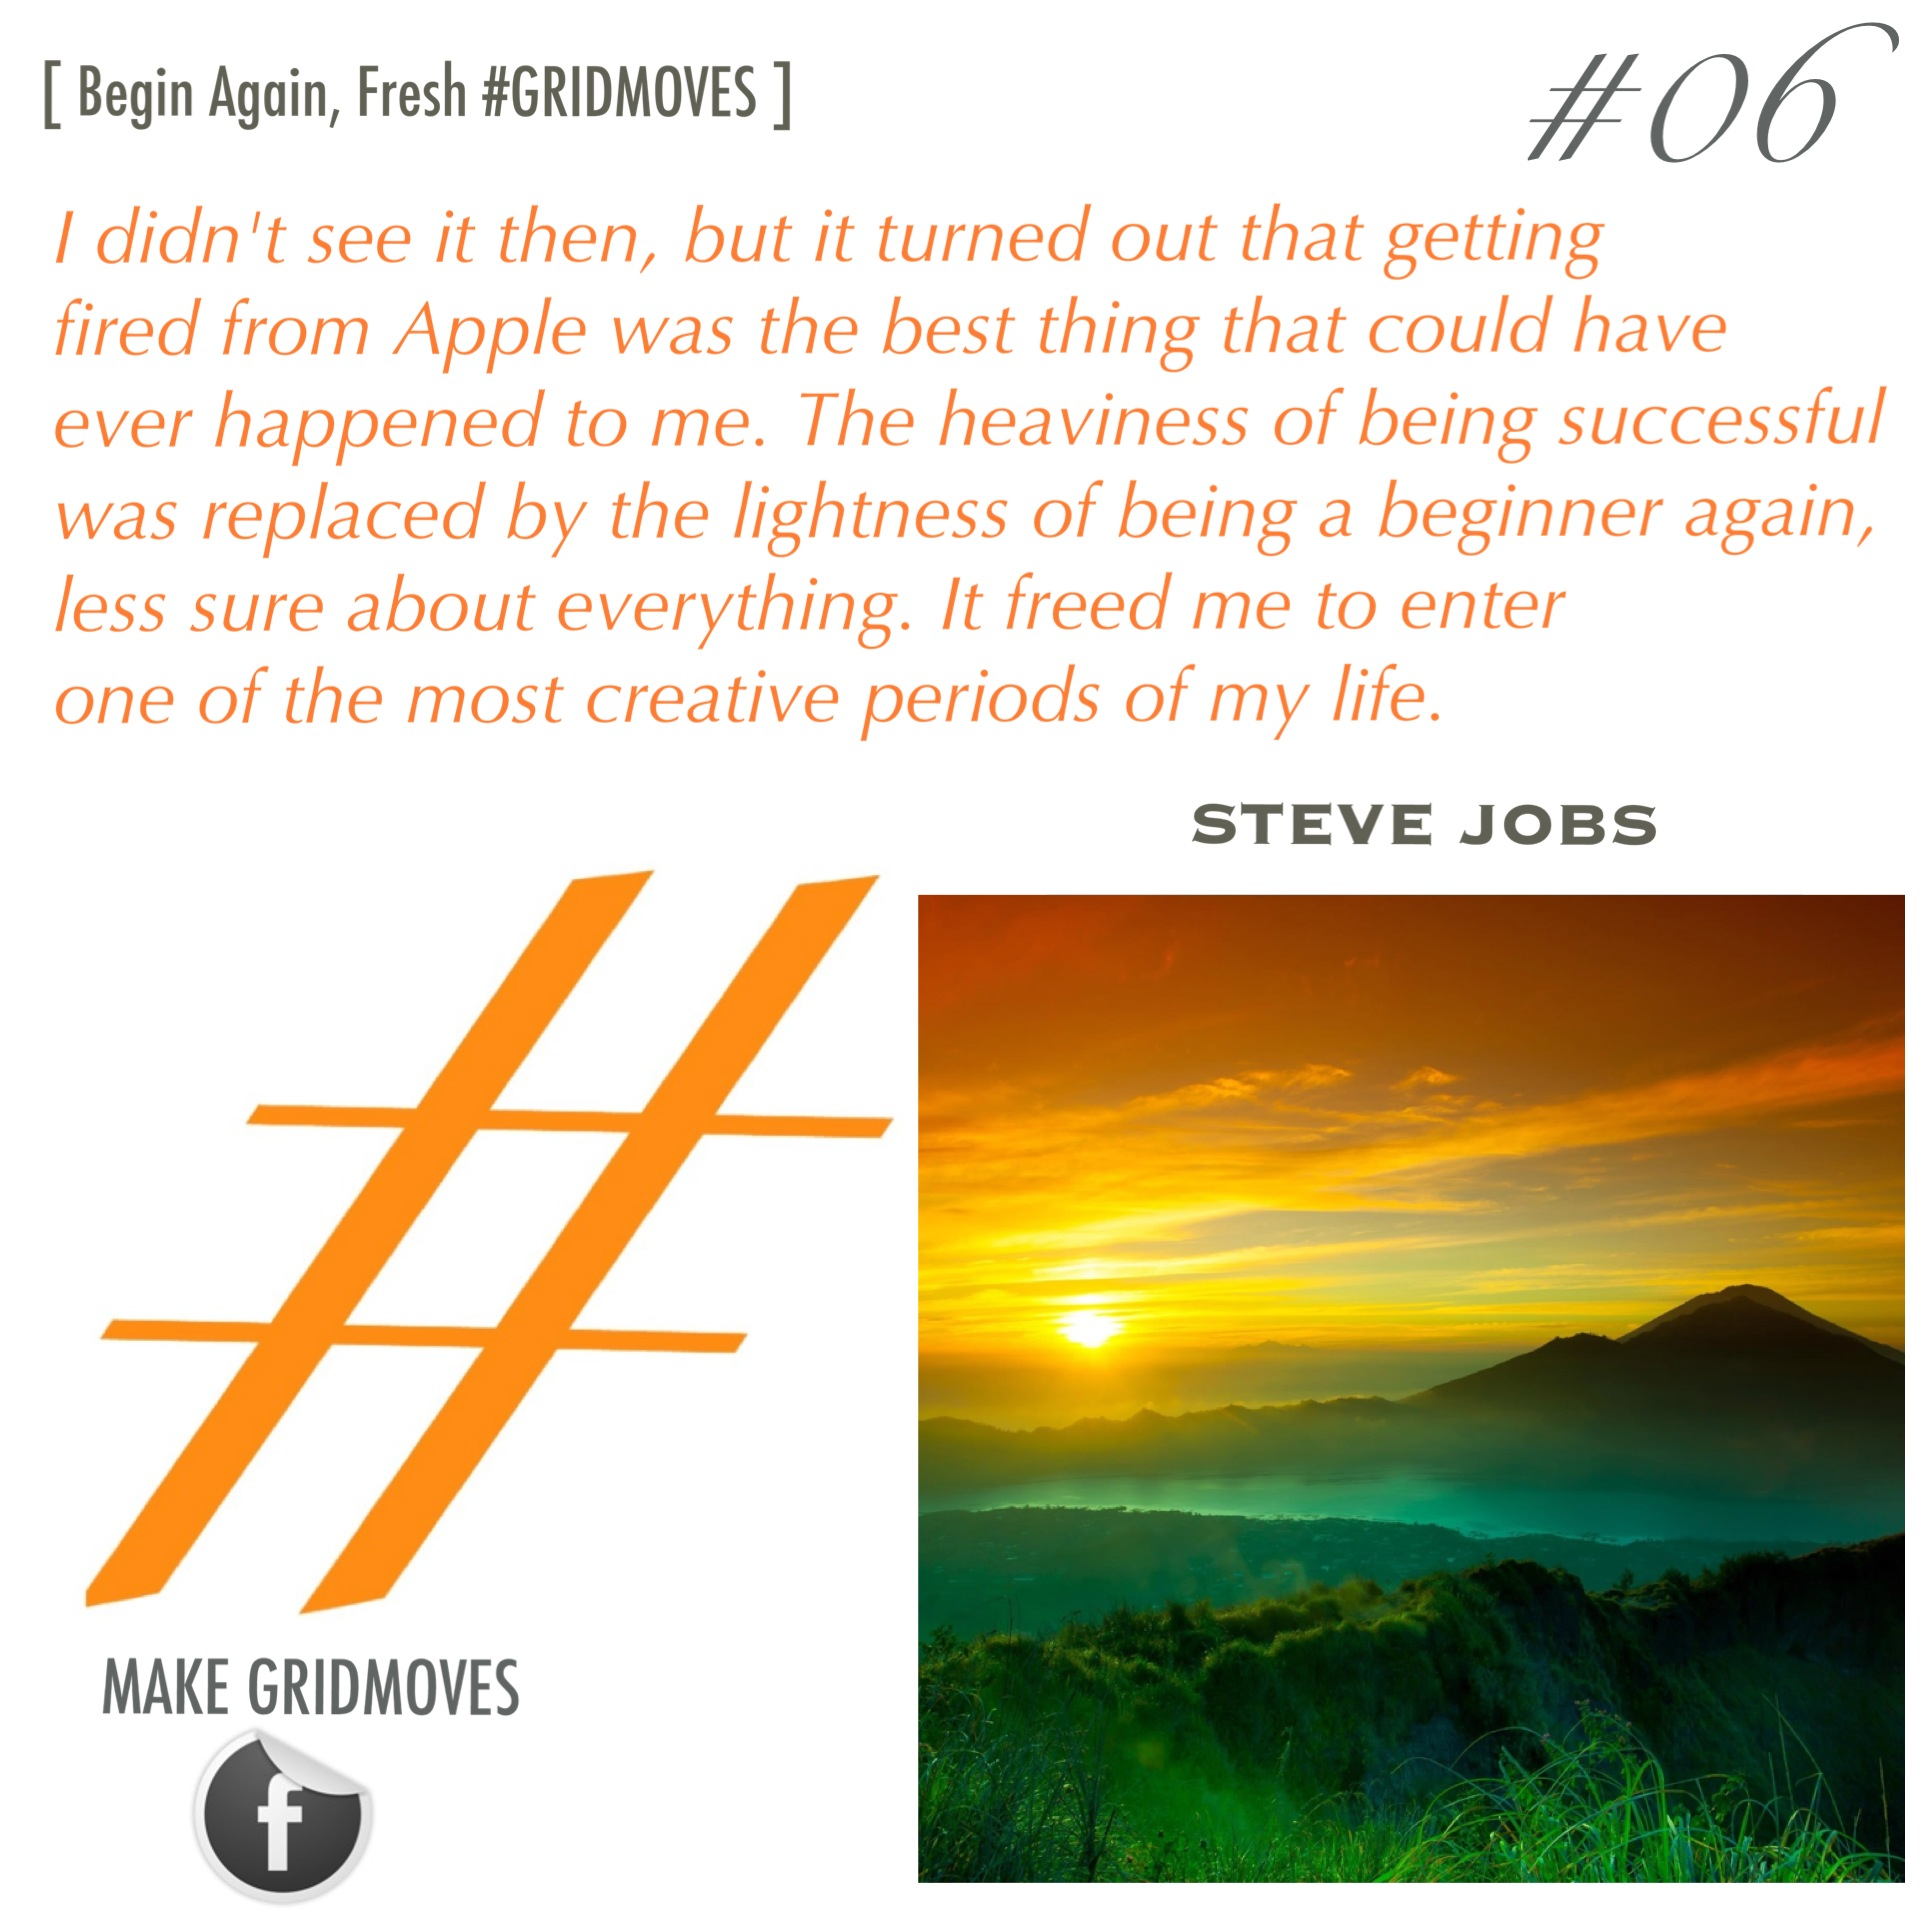 Best Motivational Quotes For Students: Steve Jobs Quotes About Success. QuotesGram